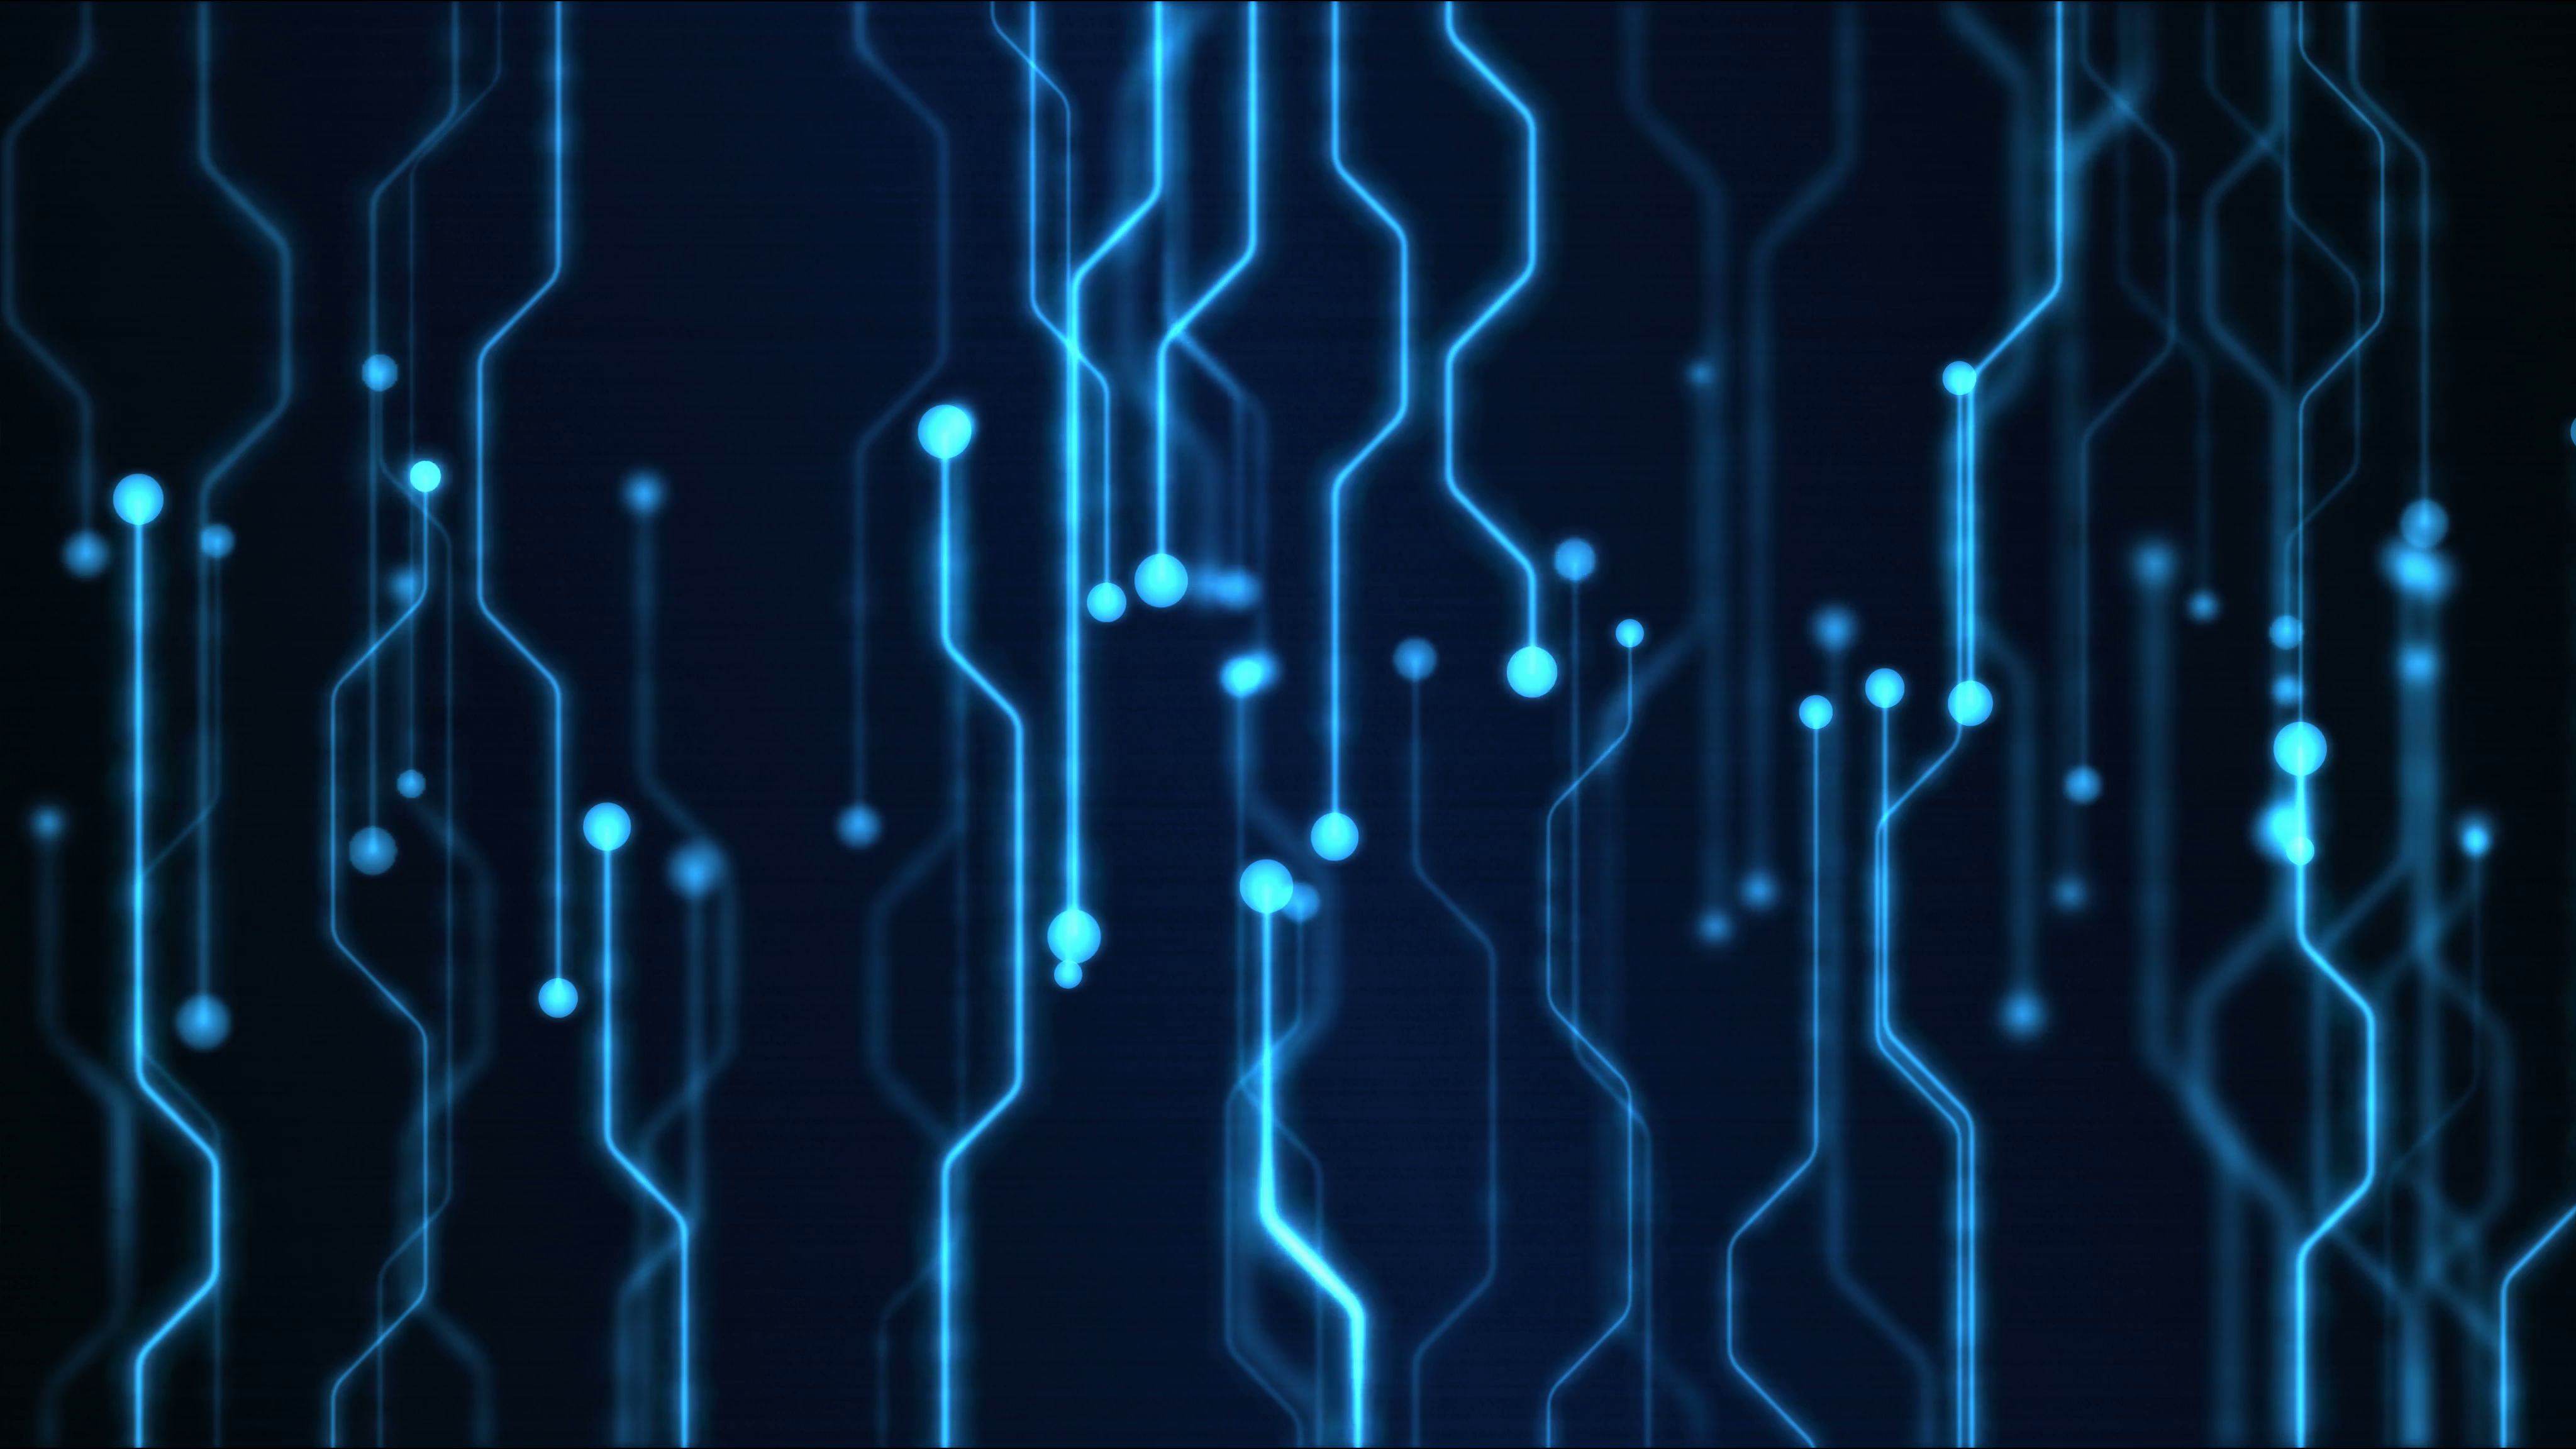 abstract technology circuit background animation loop 4096x2304